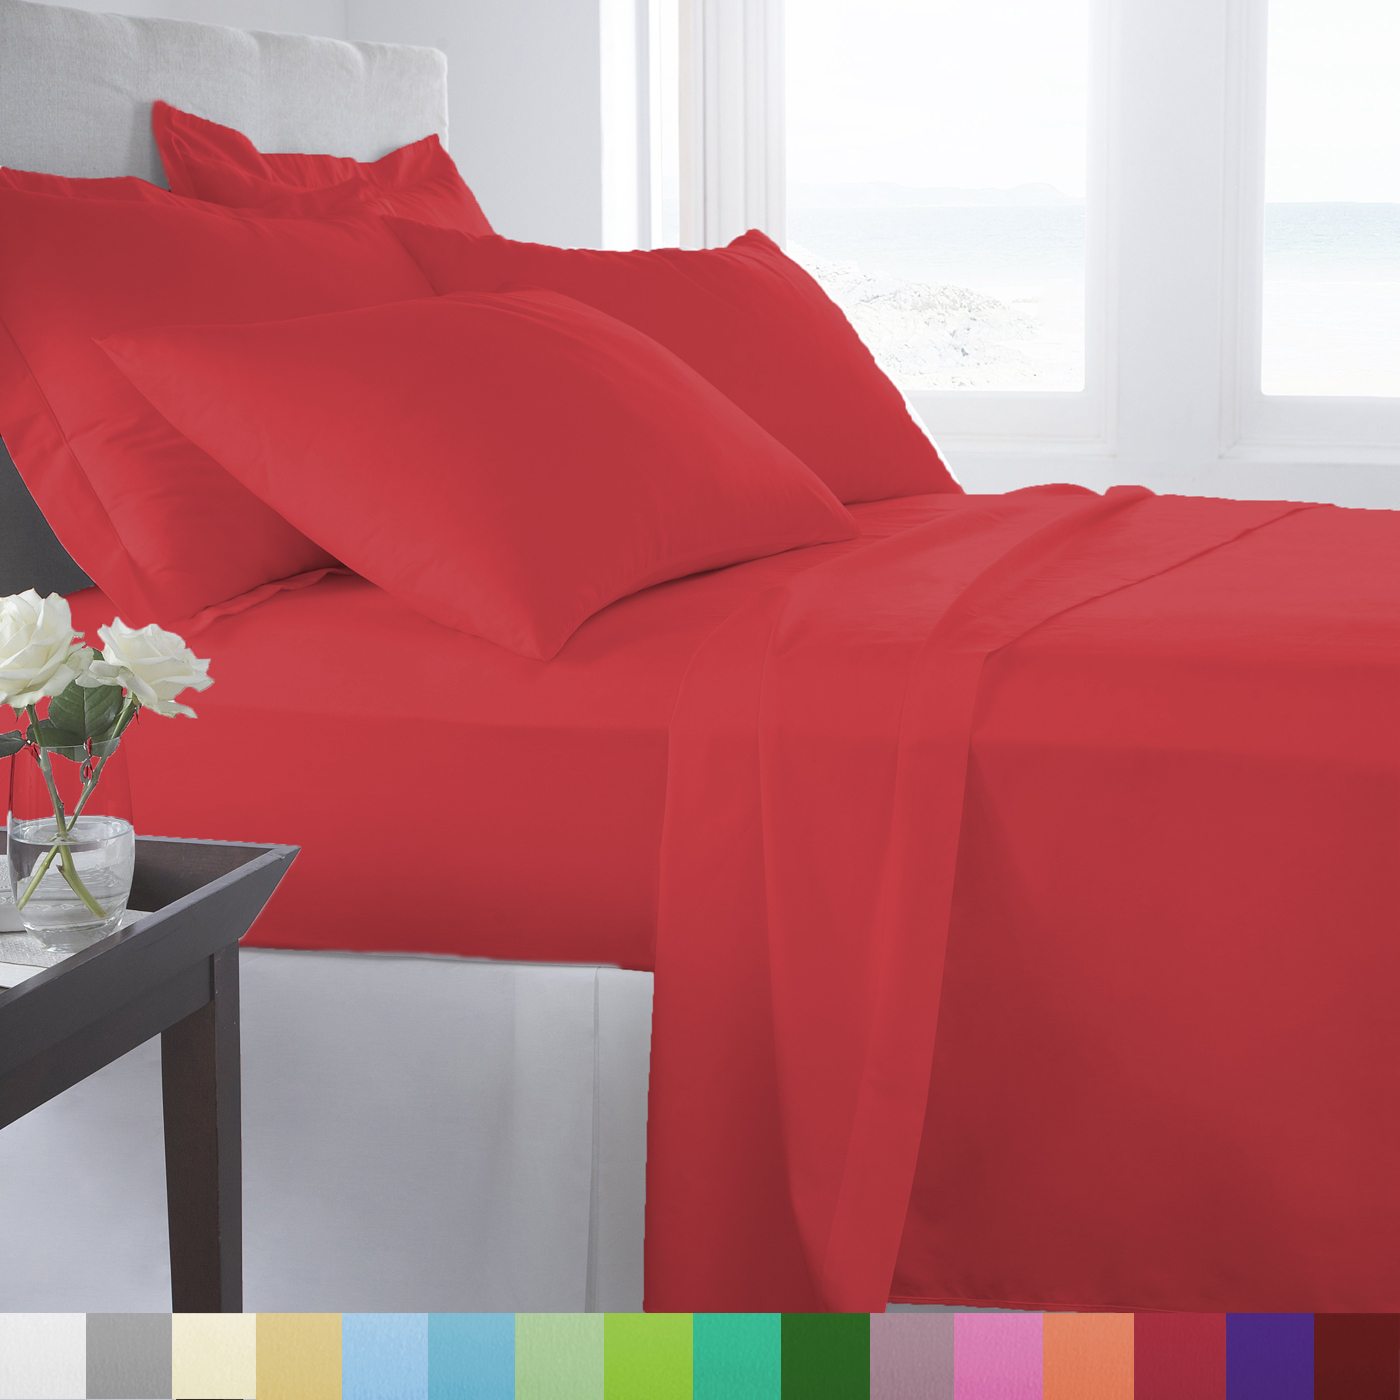 Supreme Super Soft 4 Piece Bed Sheet Set Deep Pocket Bedding - All Colors Sizes